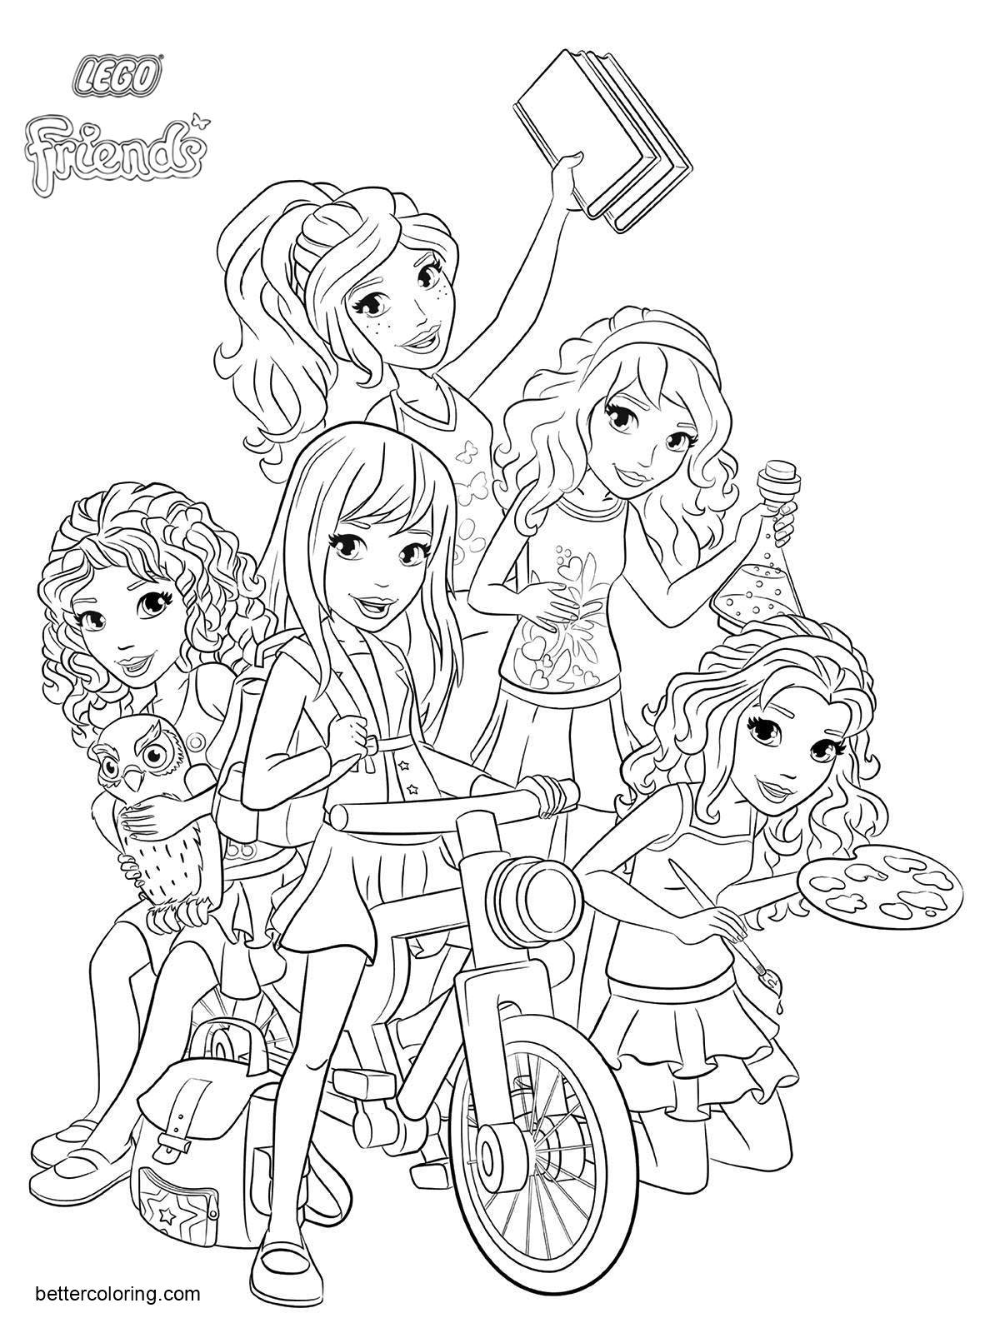 Lego Friends Coloring Pages Characters From Lego Friends Coloring Pages Free Printable Entitlementtrap Com Lego Coloring Pages Lego Coloring Lego Friends Birthday